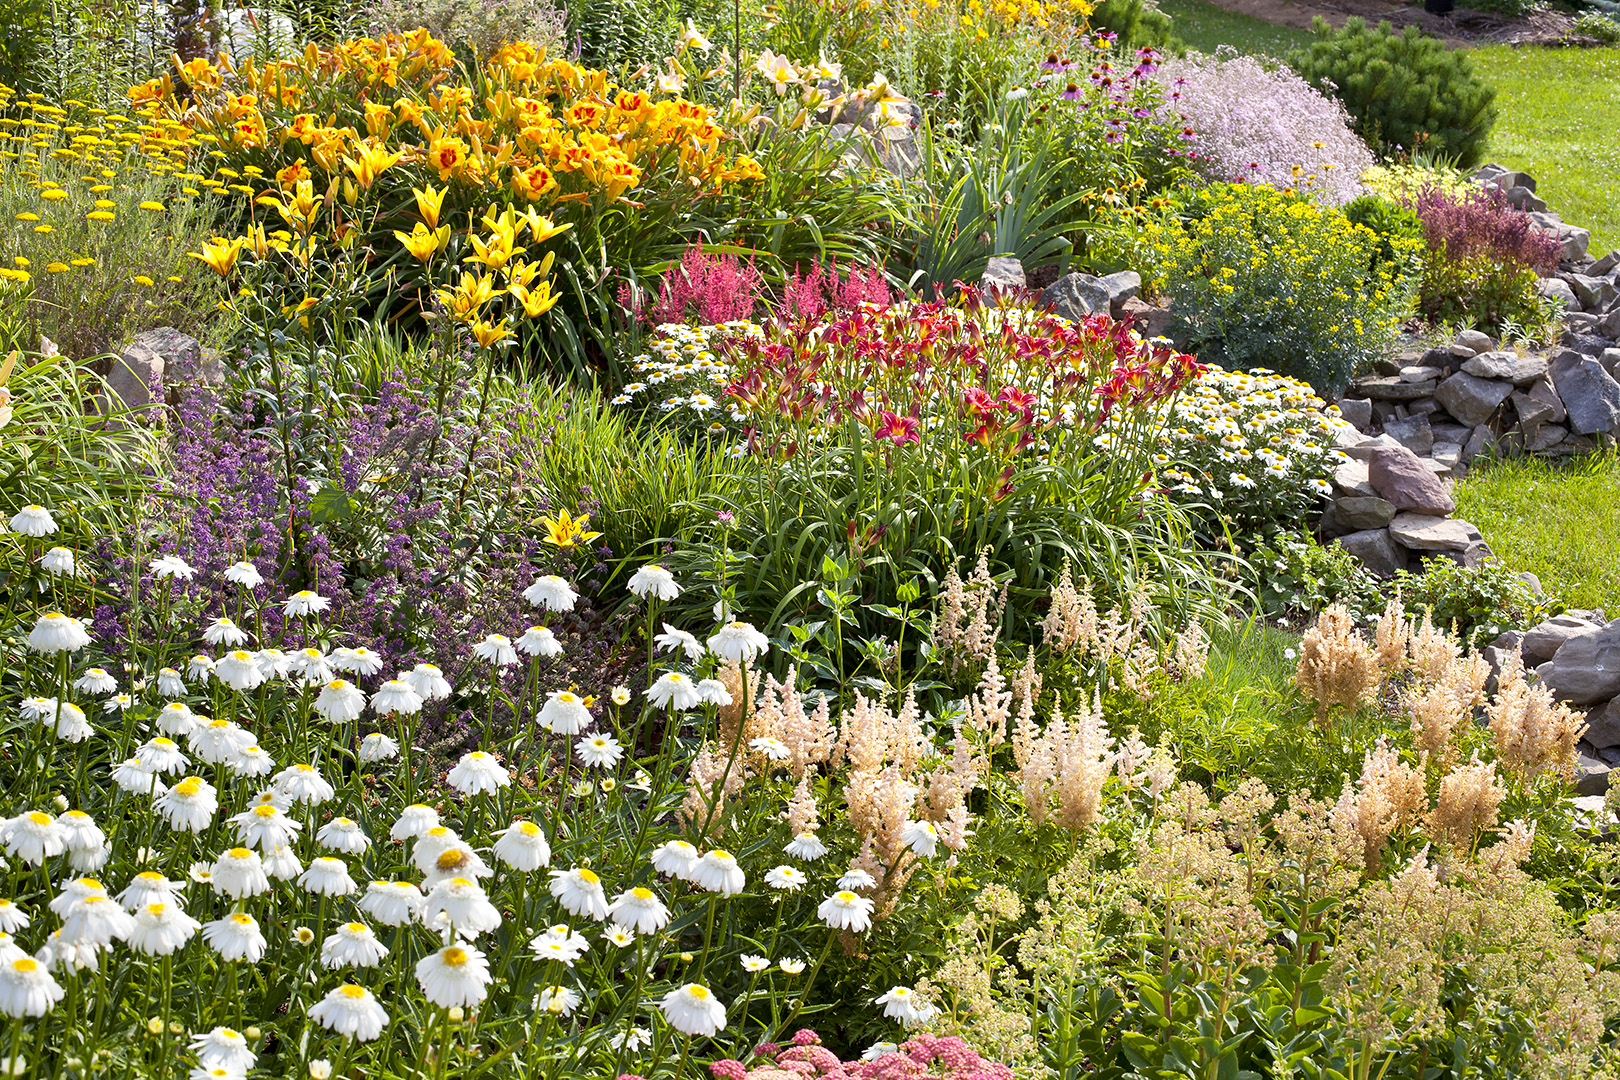 perennial bed with daylily and astilbe flowers